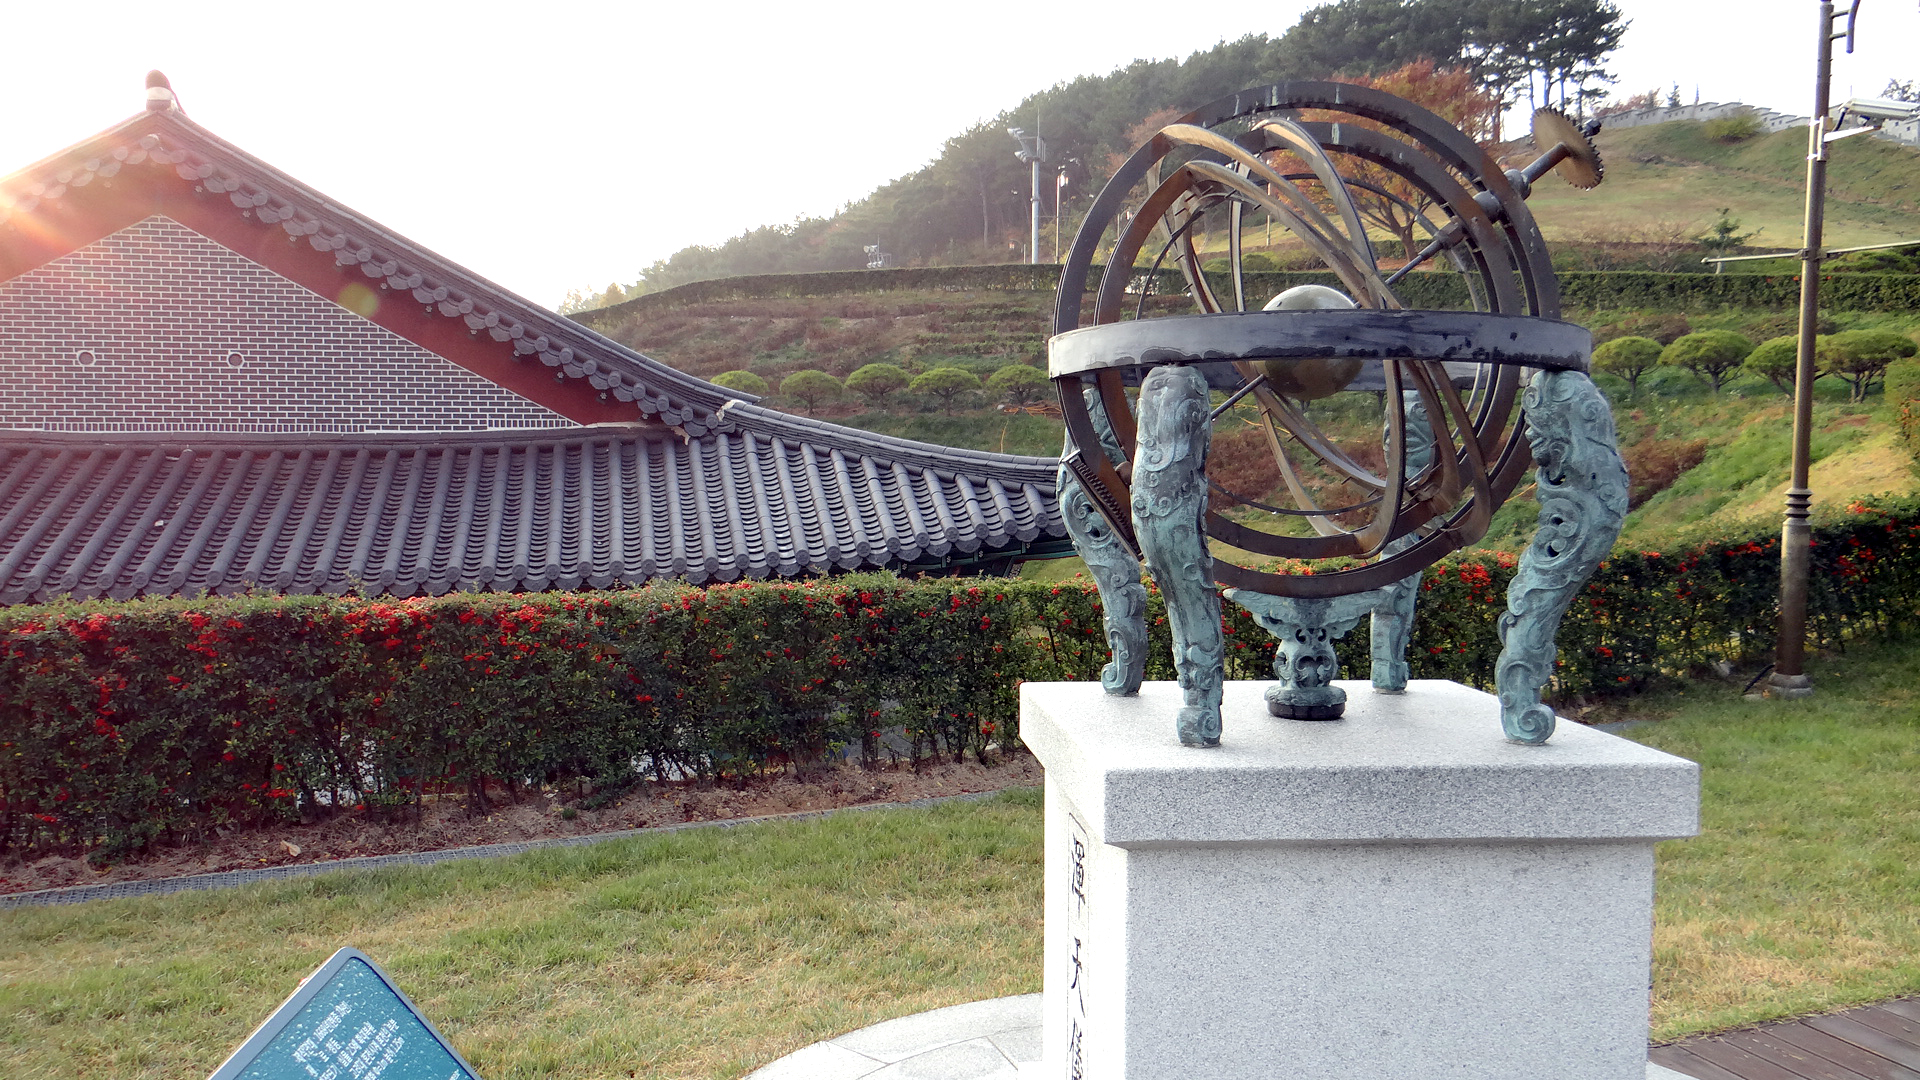 FileBusan South KoreaJang Yeong sil Science Garden Armillary